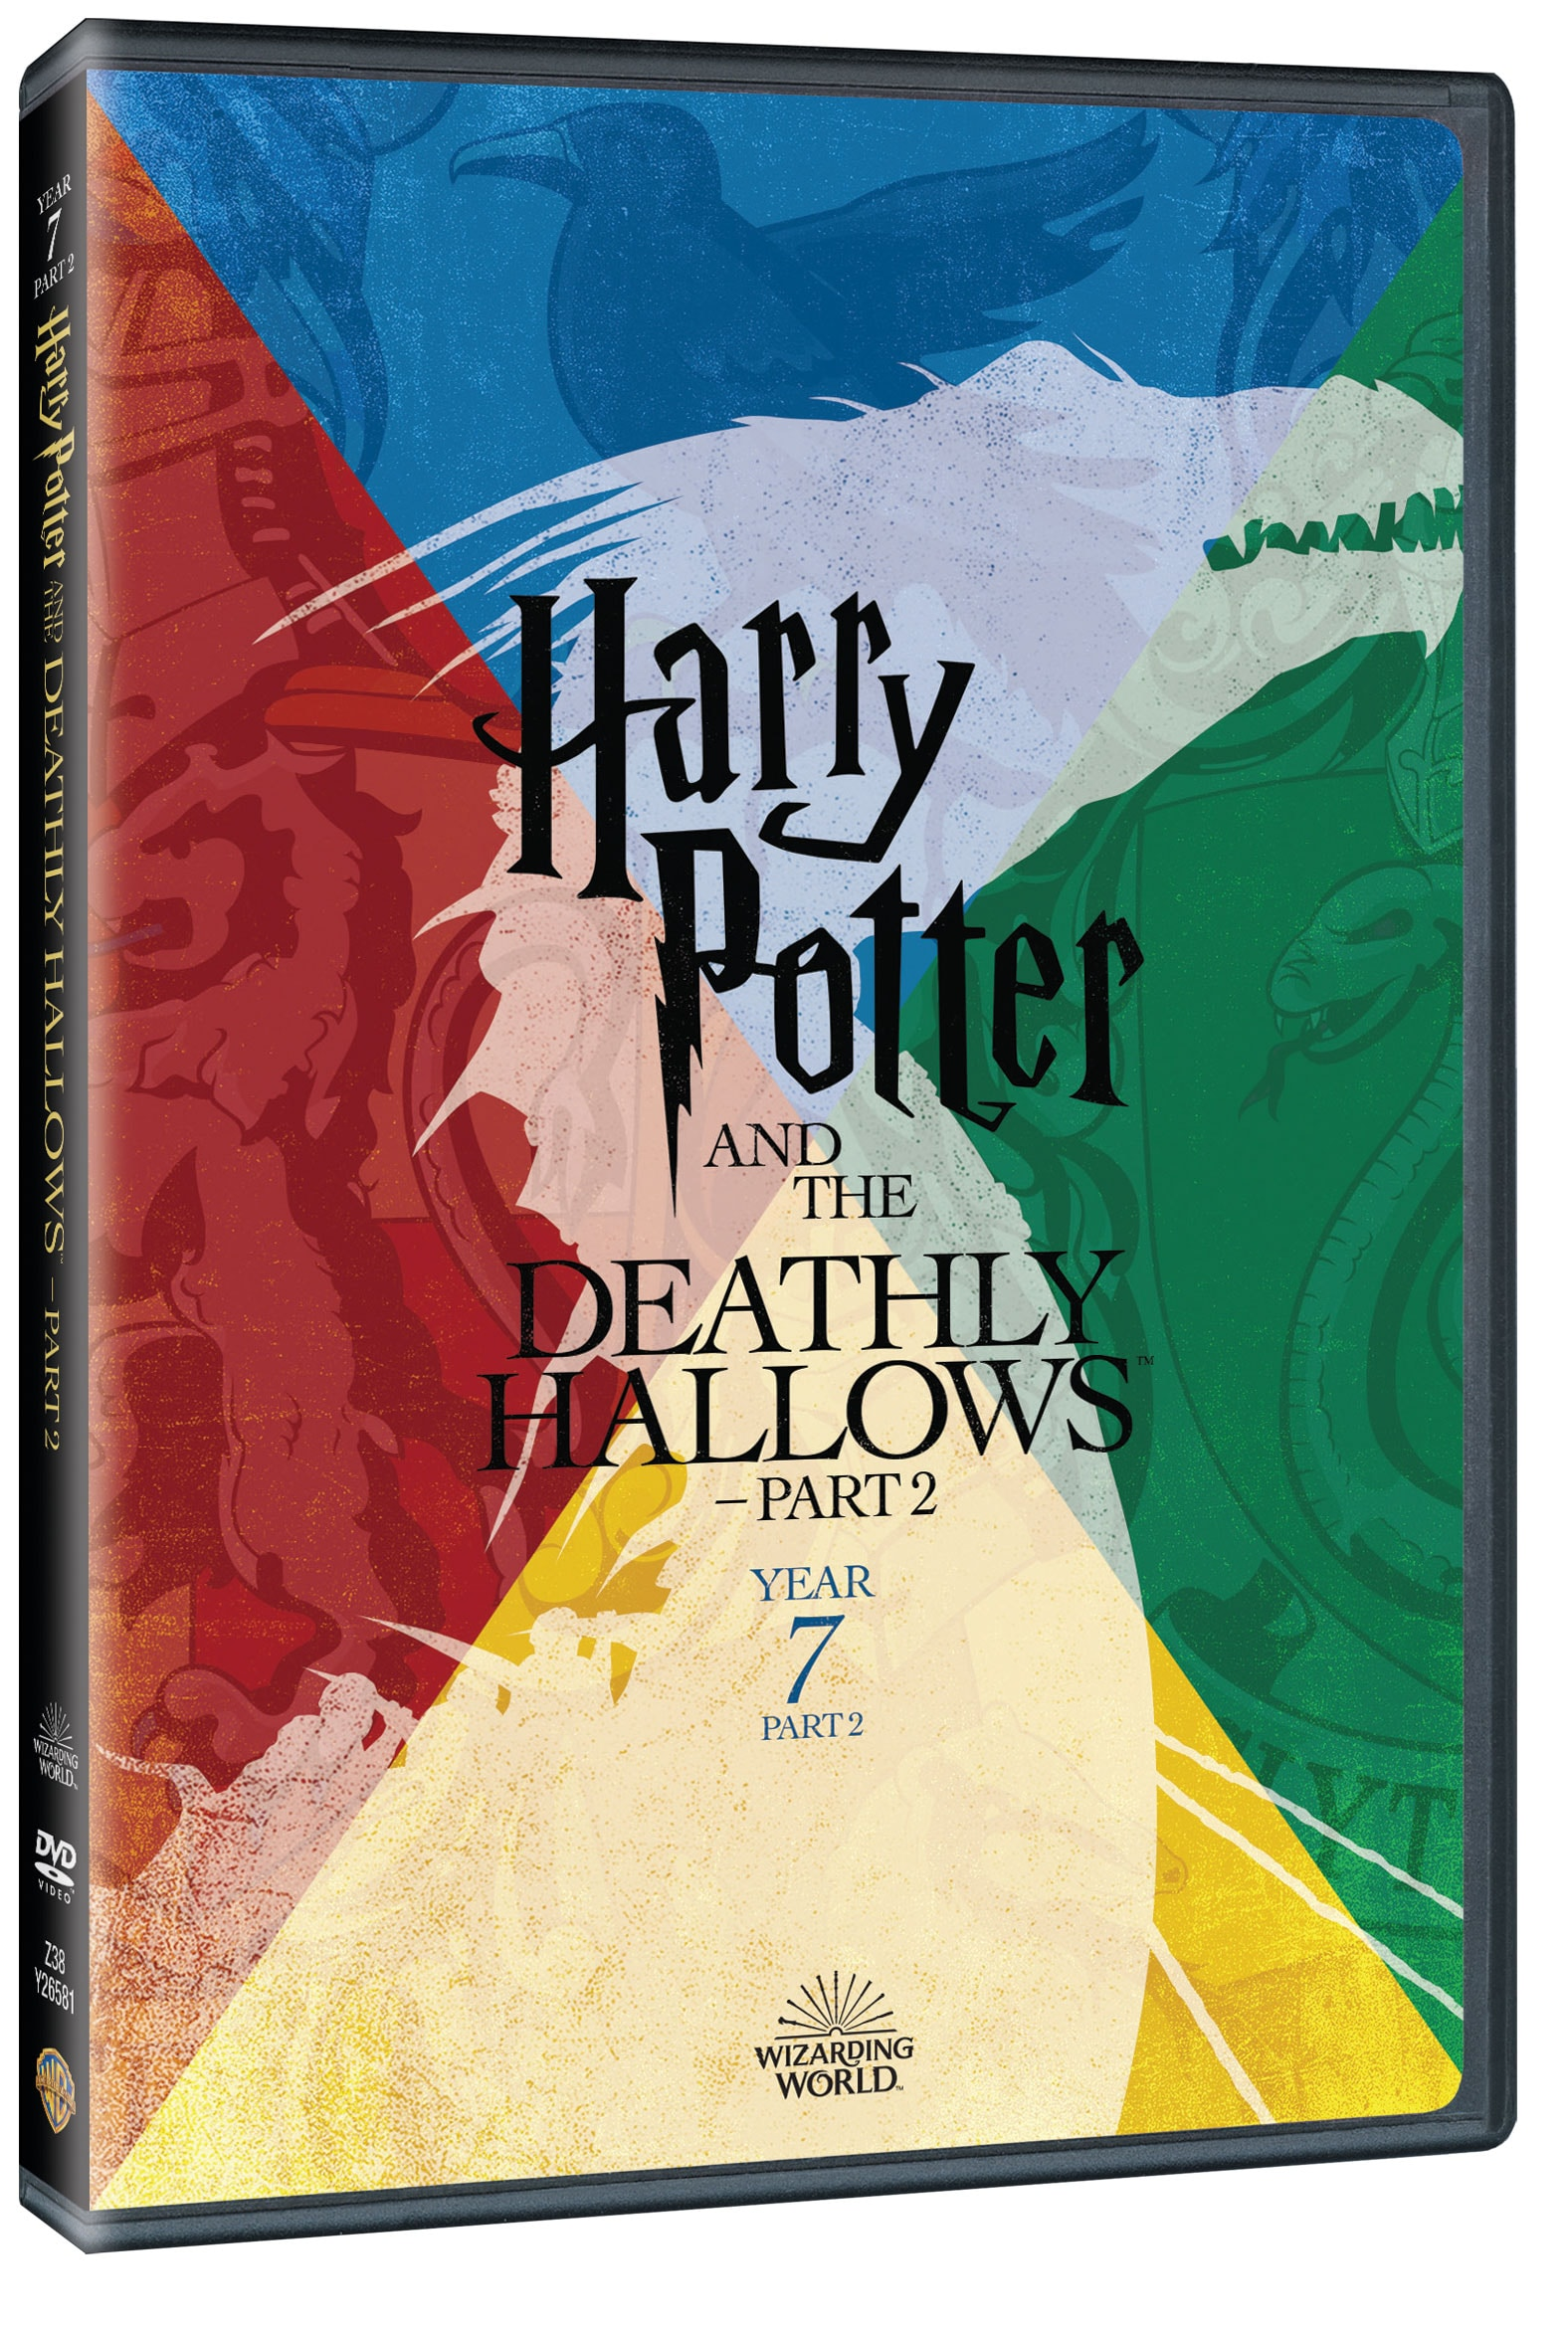 HARRY POTTER & DEATHLY HALLOWS-PART 2